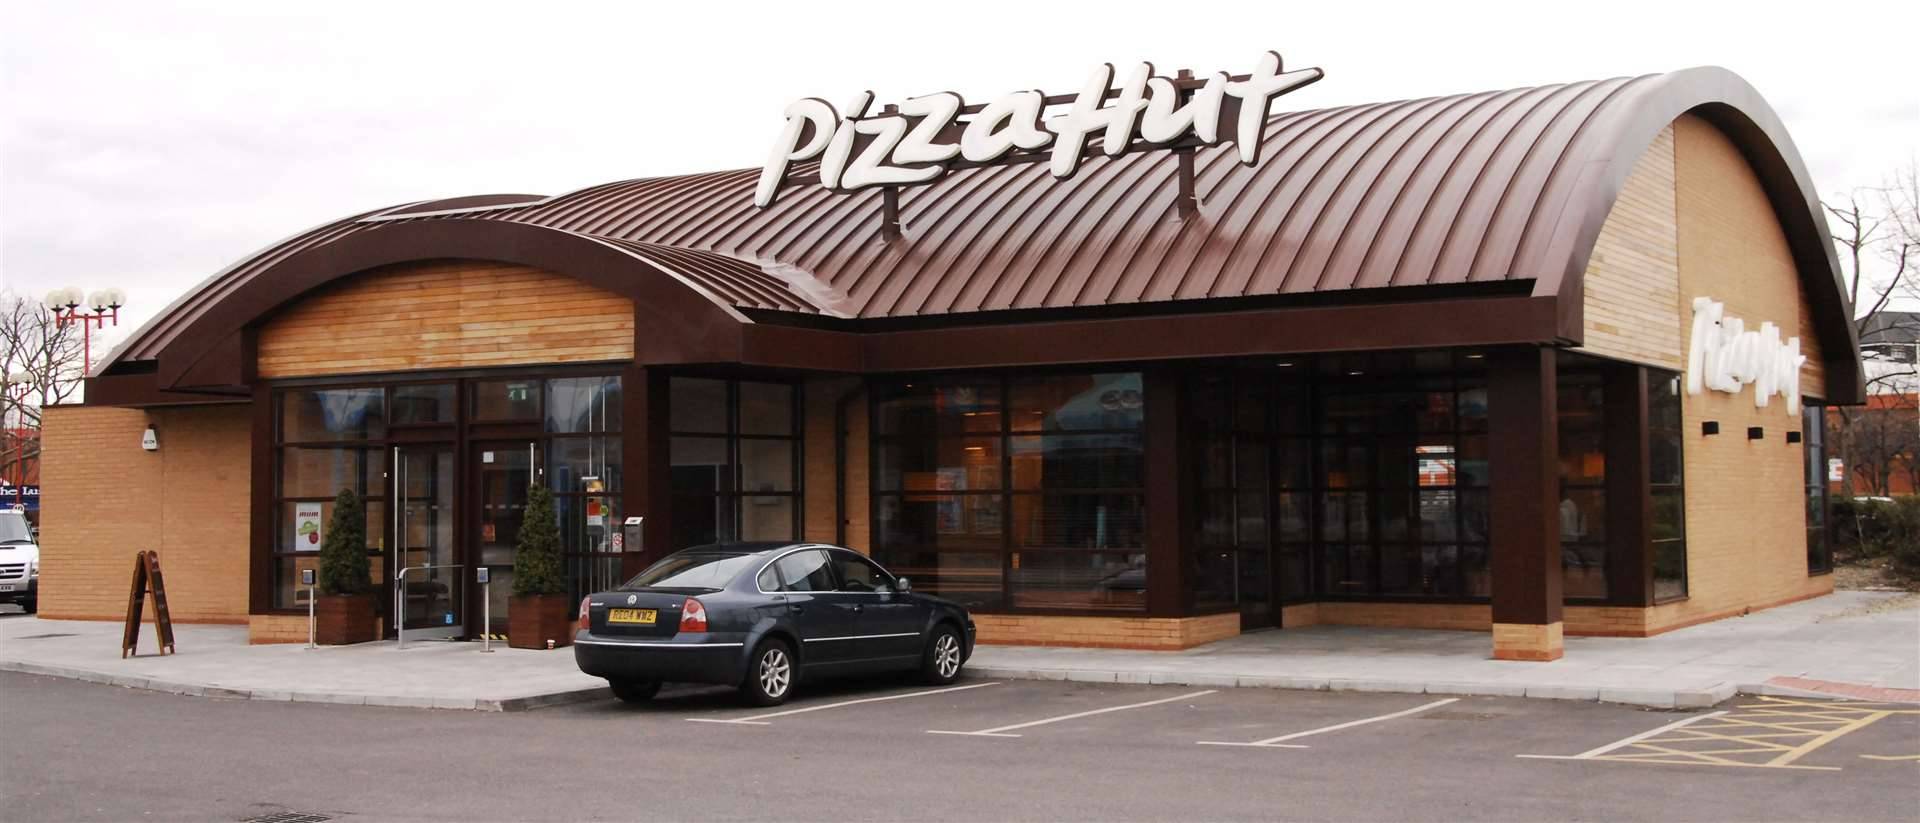 Pizza Hut, Gravesend. Picture: Nick Johnson